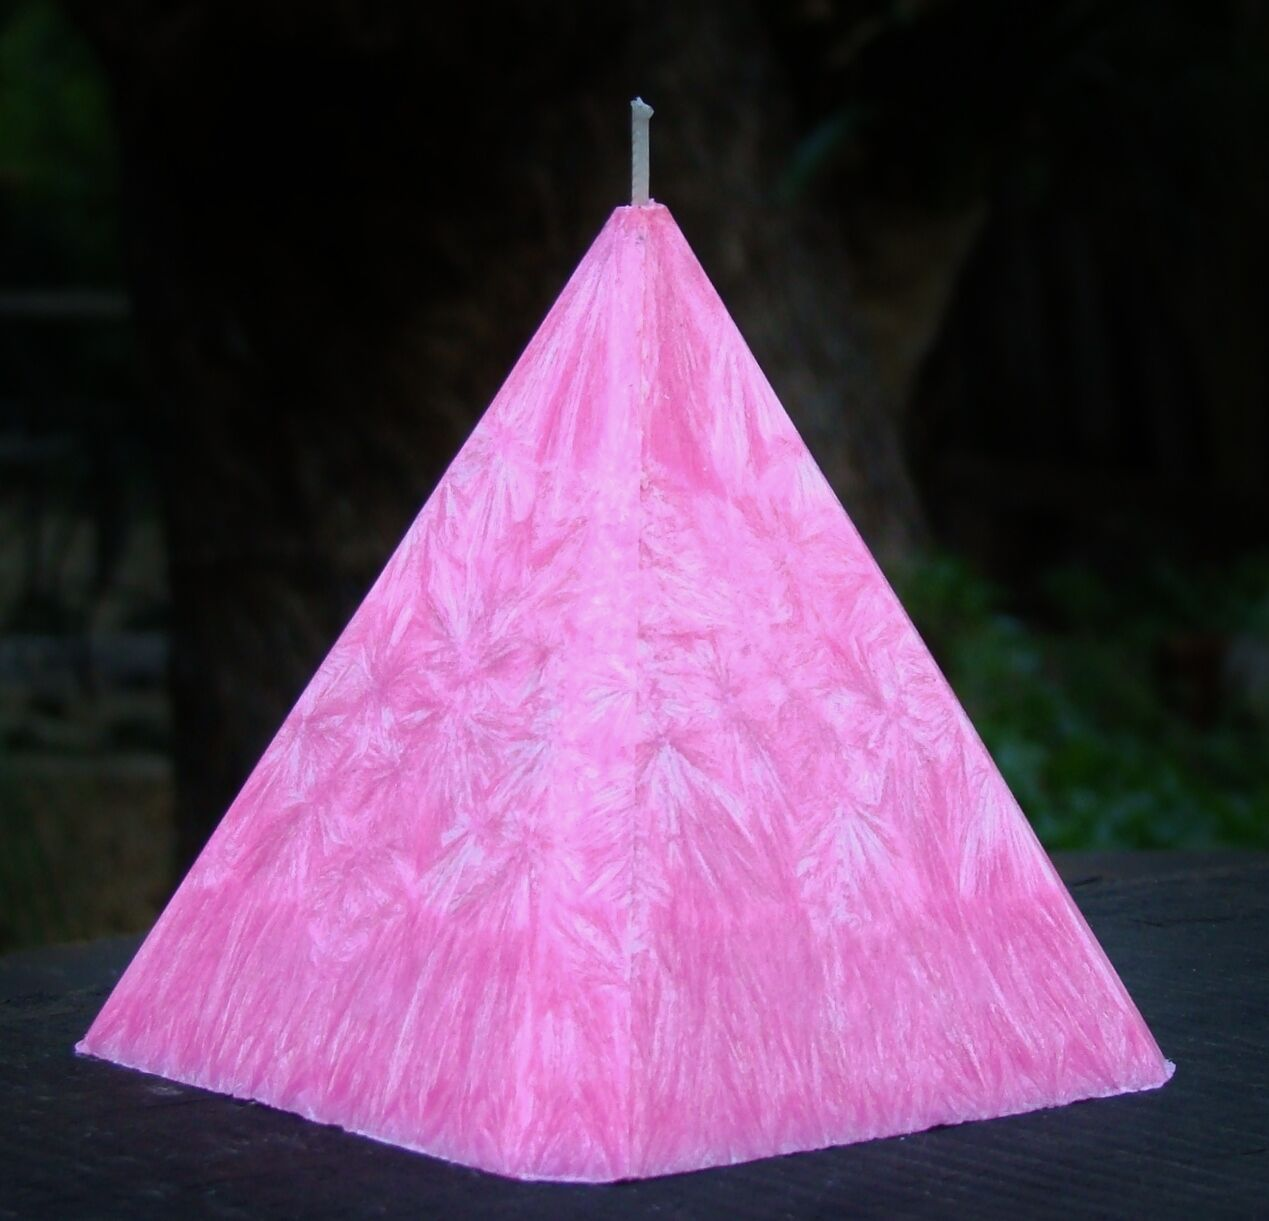 1KG 150hr PINK FRANGIPANI & JASMINE Triple Scented 4 SIDED EGYPT PYRAMID CANDLE